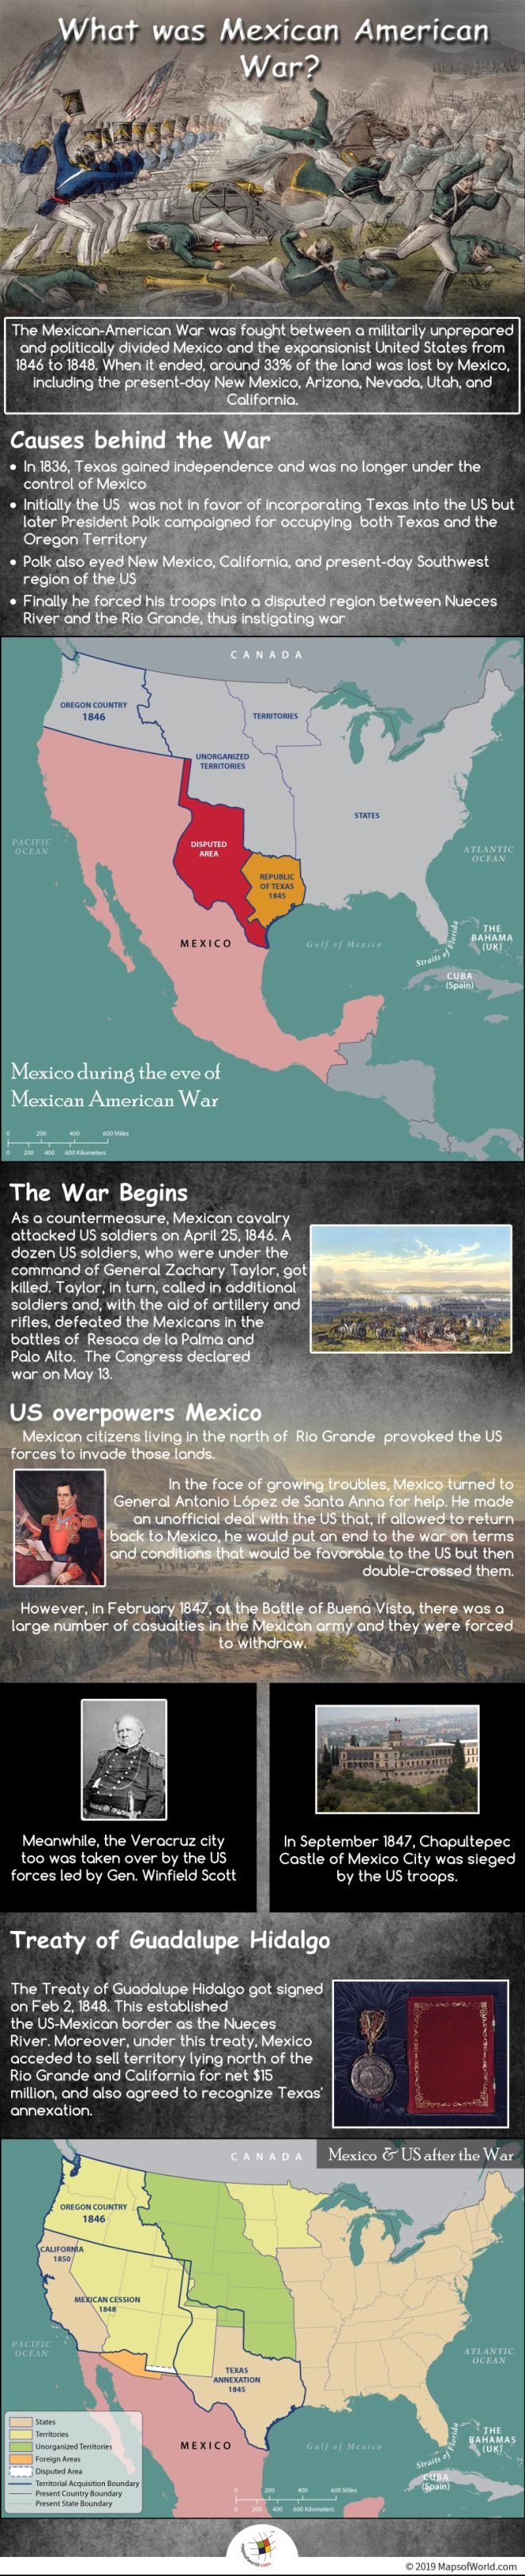 Infographic Showing Details of The Mexican American War